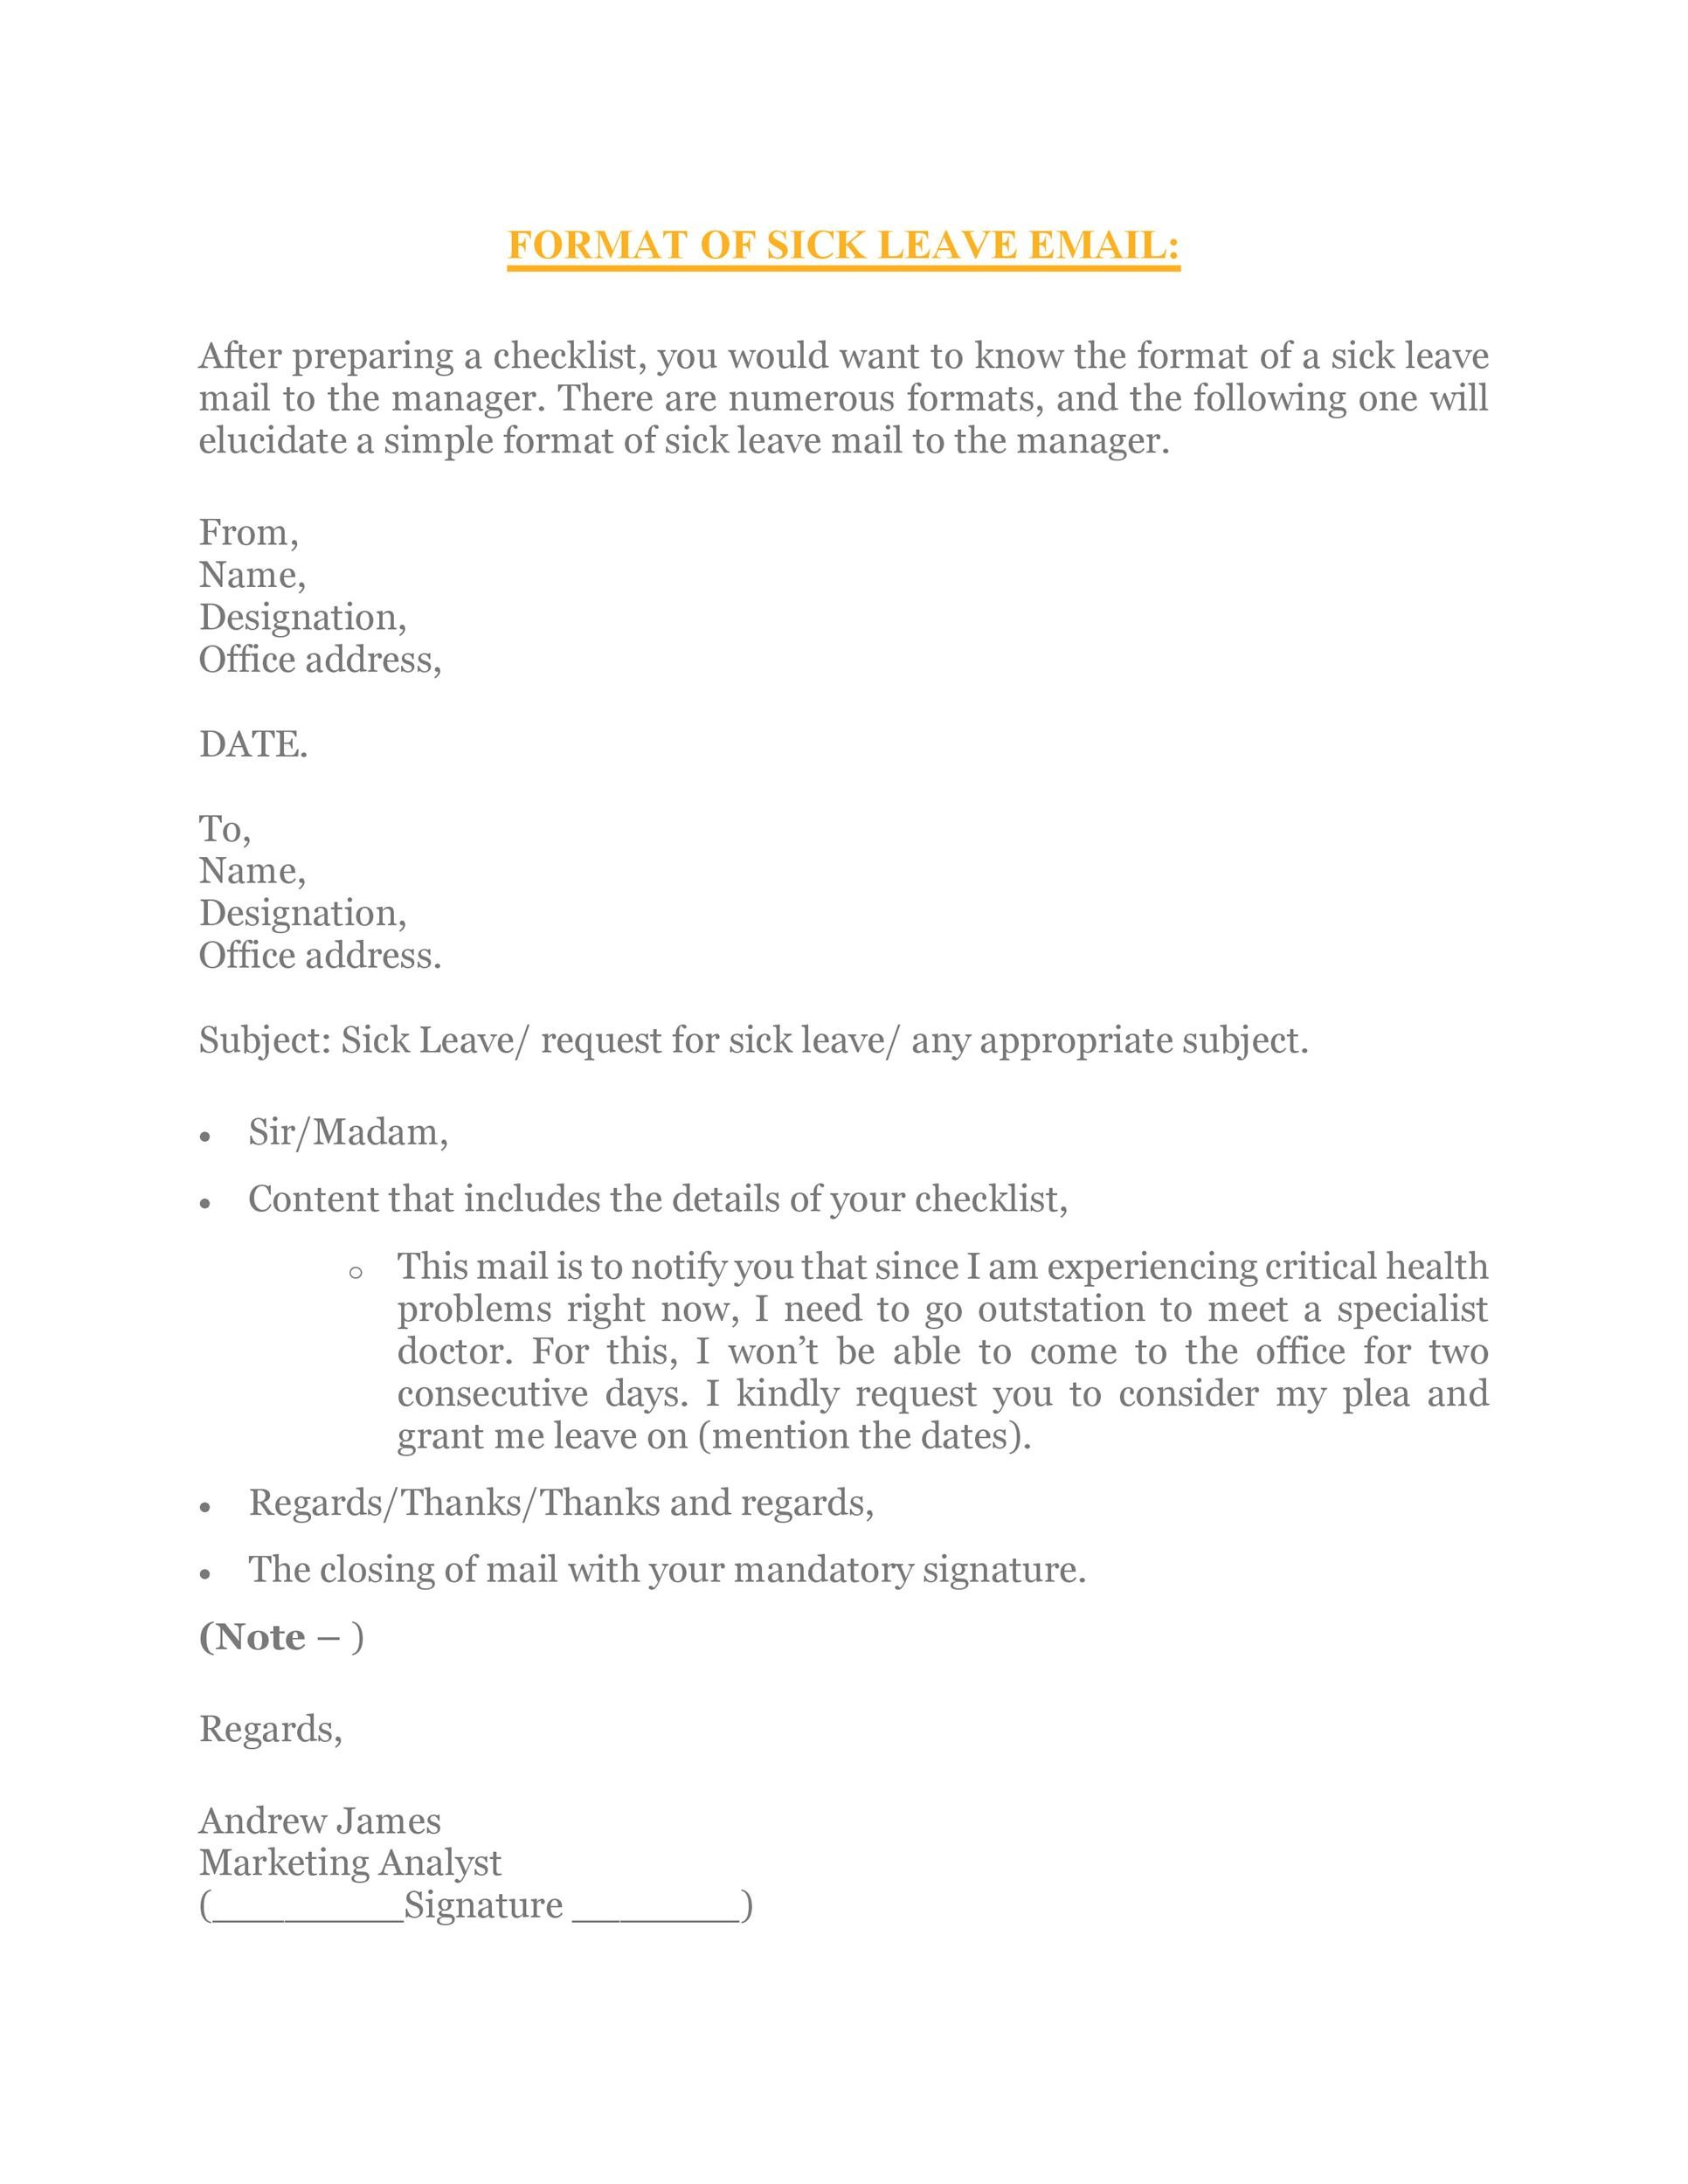 Free sick leave email 31